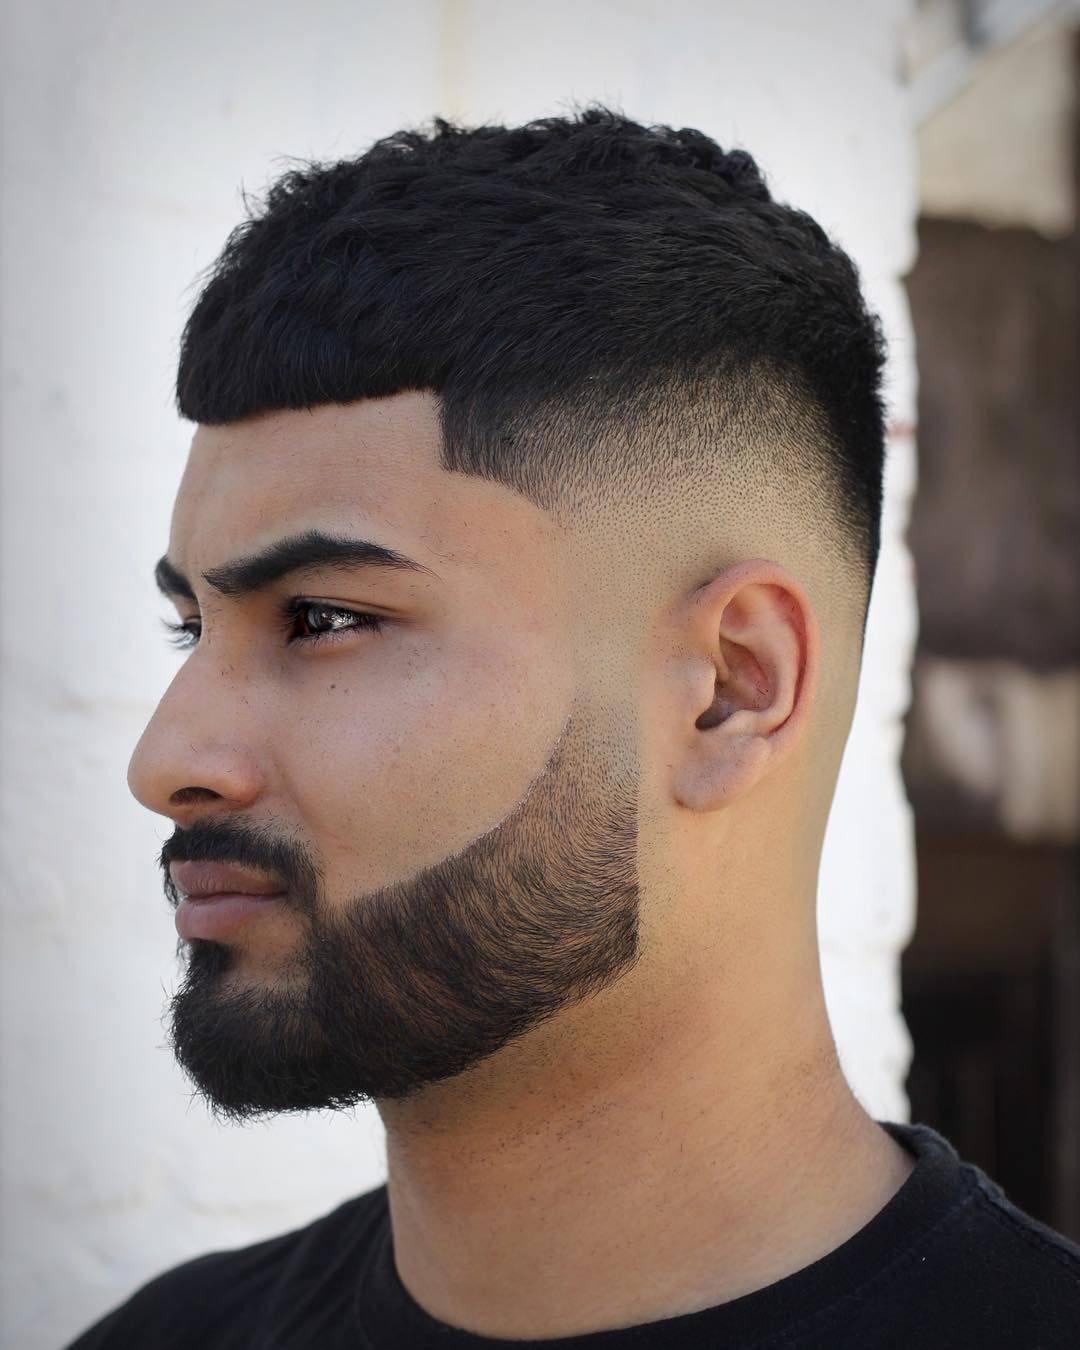 Latino Mens Haircuts Latino Haircuts Cool Hairstyles For Men Haircuts For Men